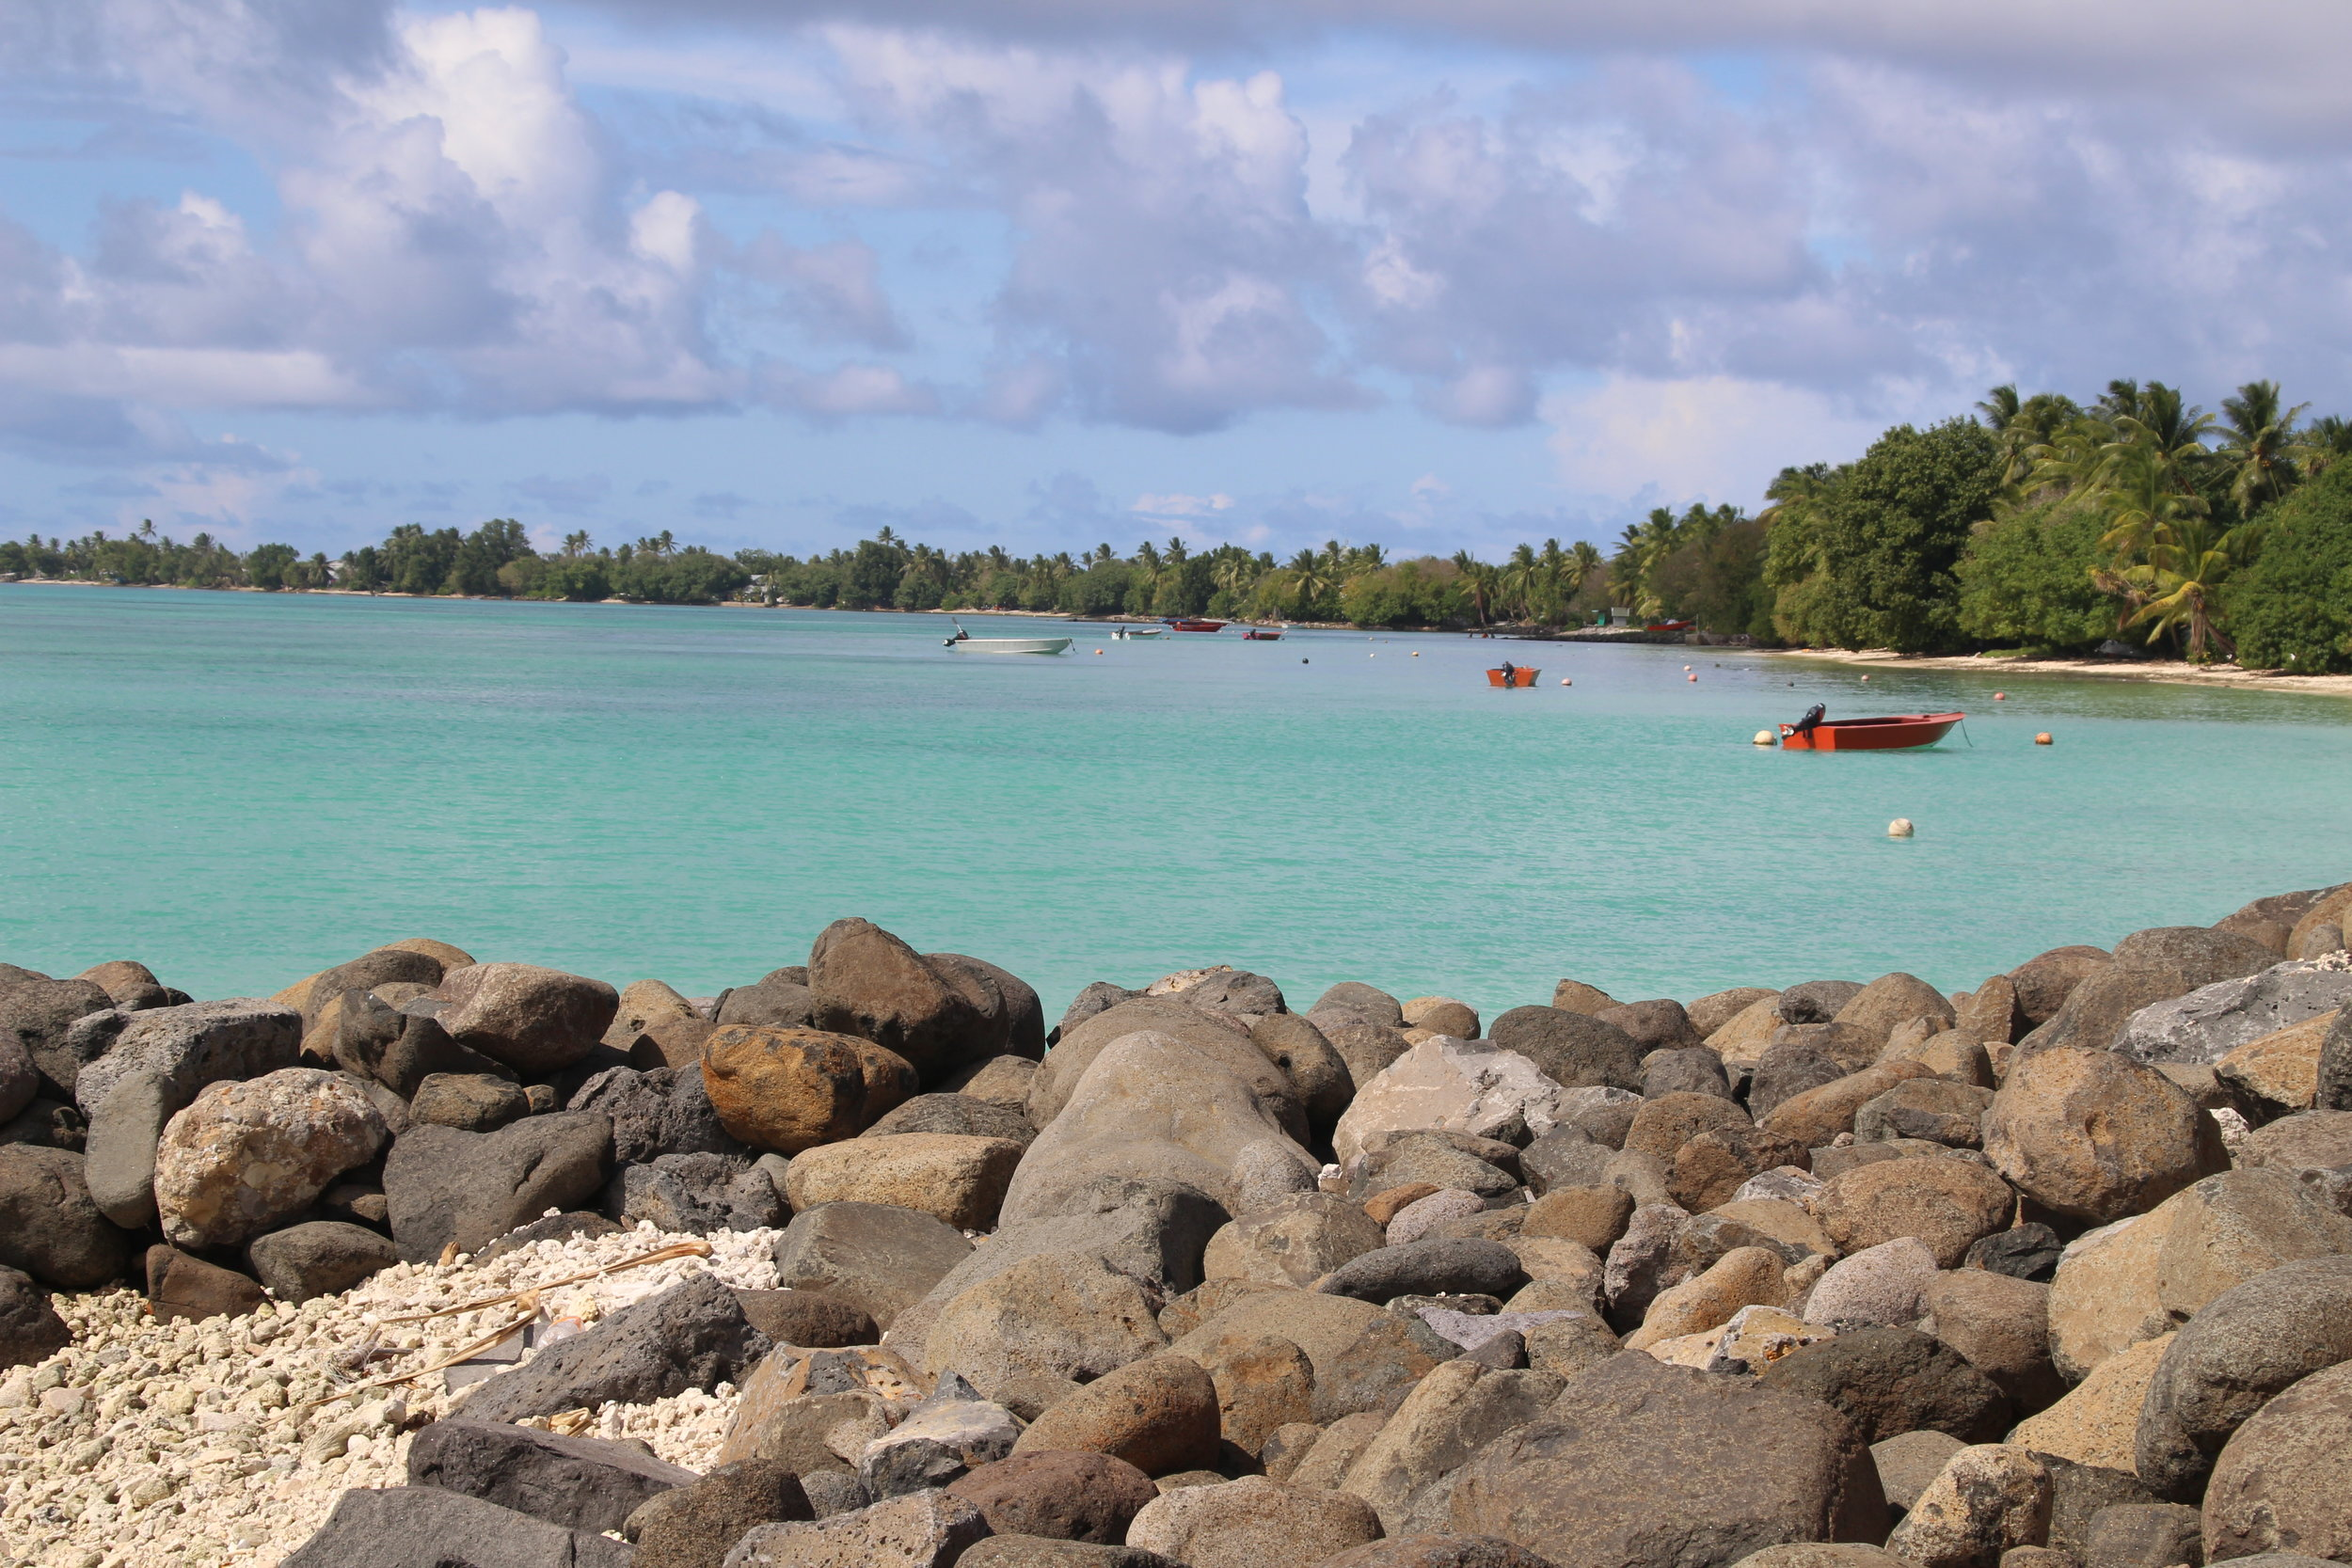 The foreshore at Fogafale in Funafuti, Tuvalu (Photo: UNDP/Jone Feresi)